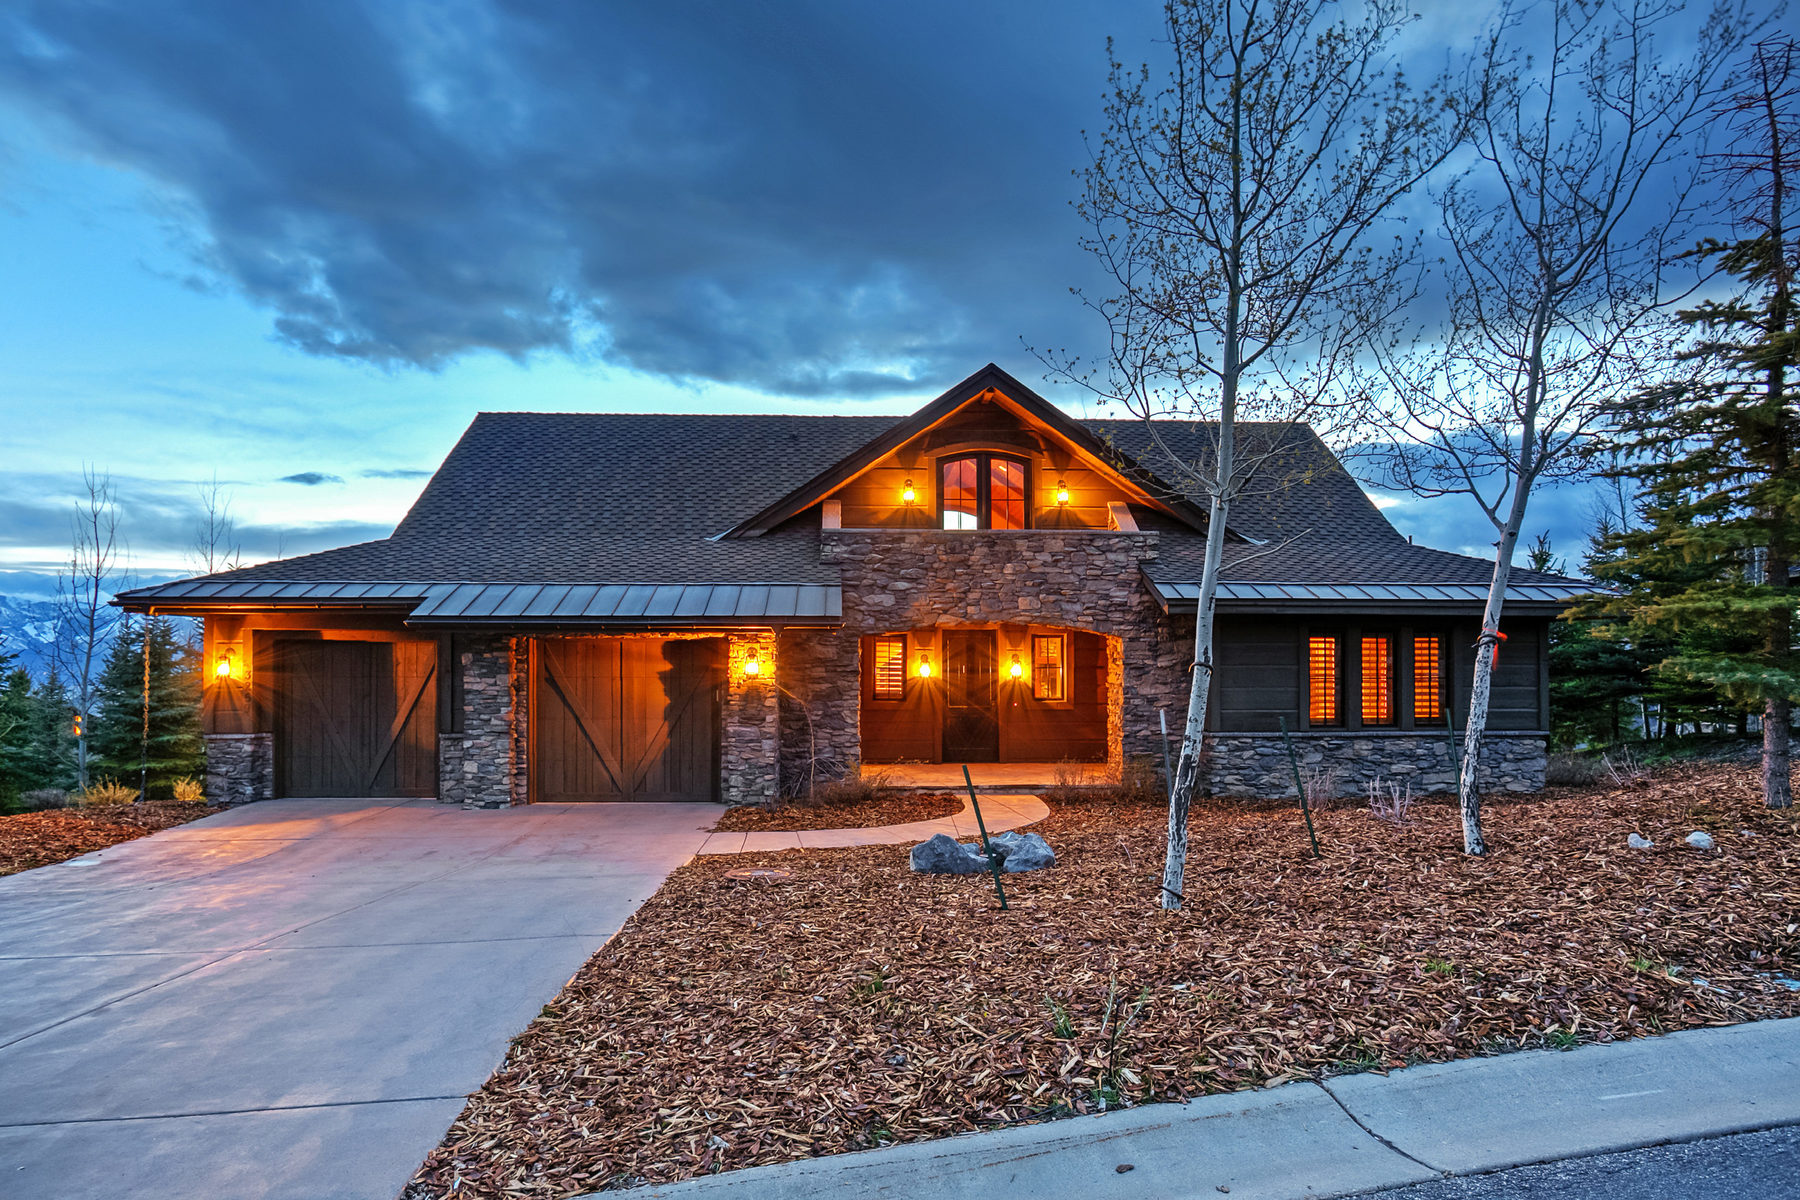 Single Family Home for Sale at Perfect Promontory Cabin in the heart of Promontory 3259 Tatanka Trl Park City, Utah, 84098 United States